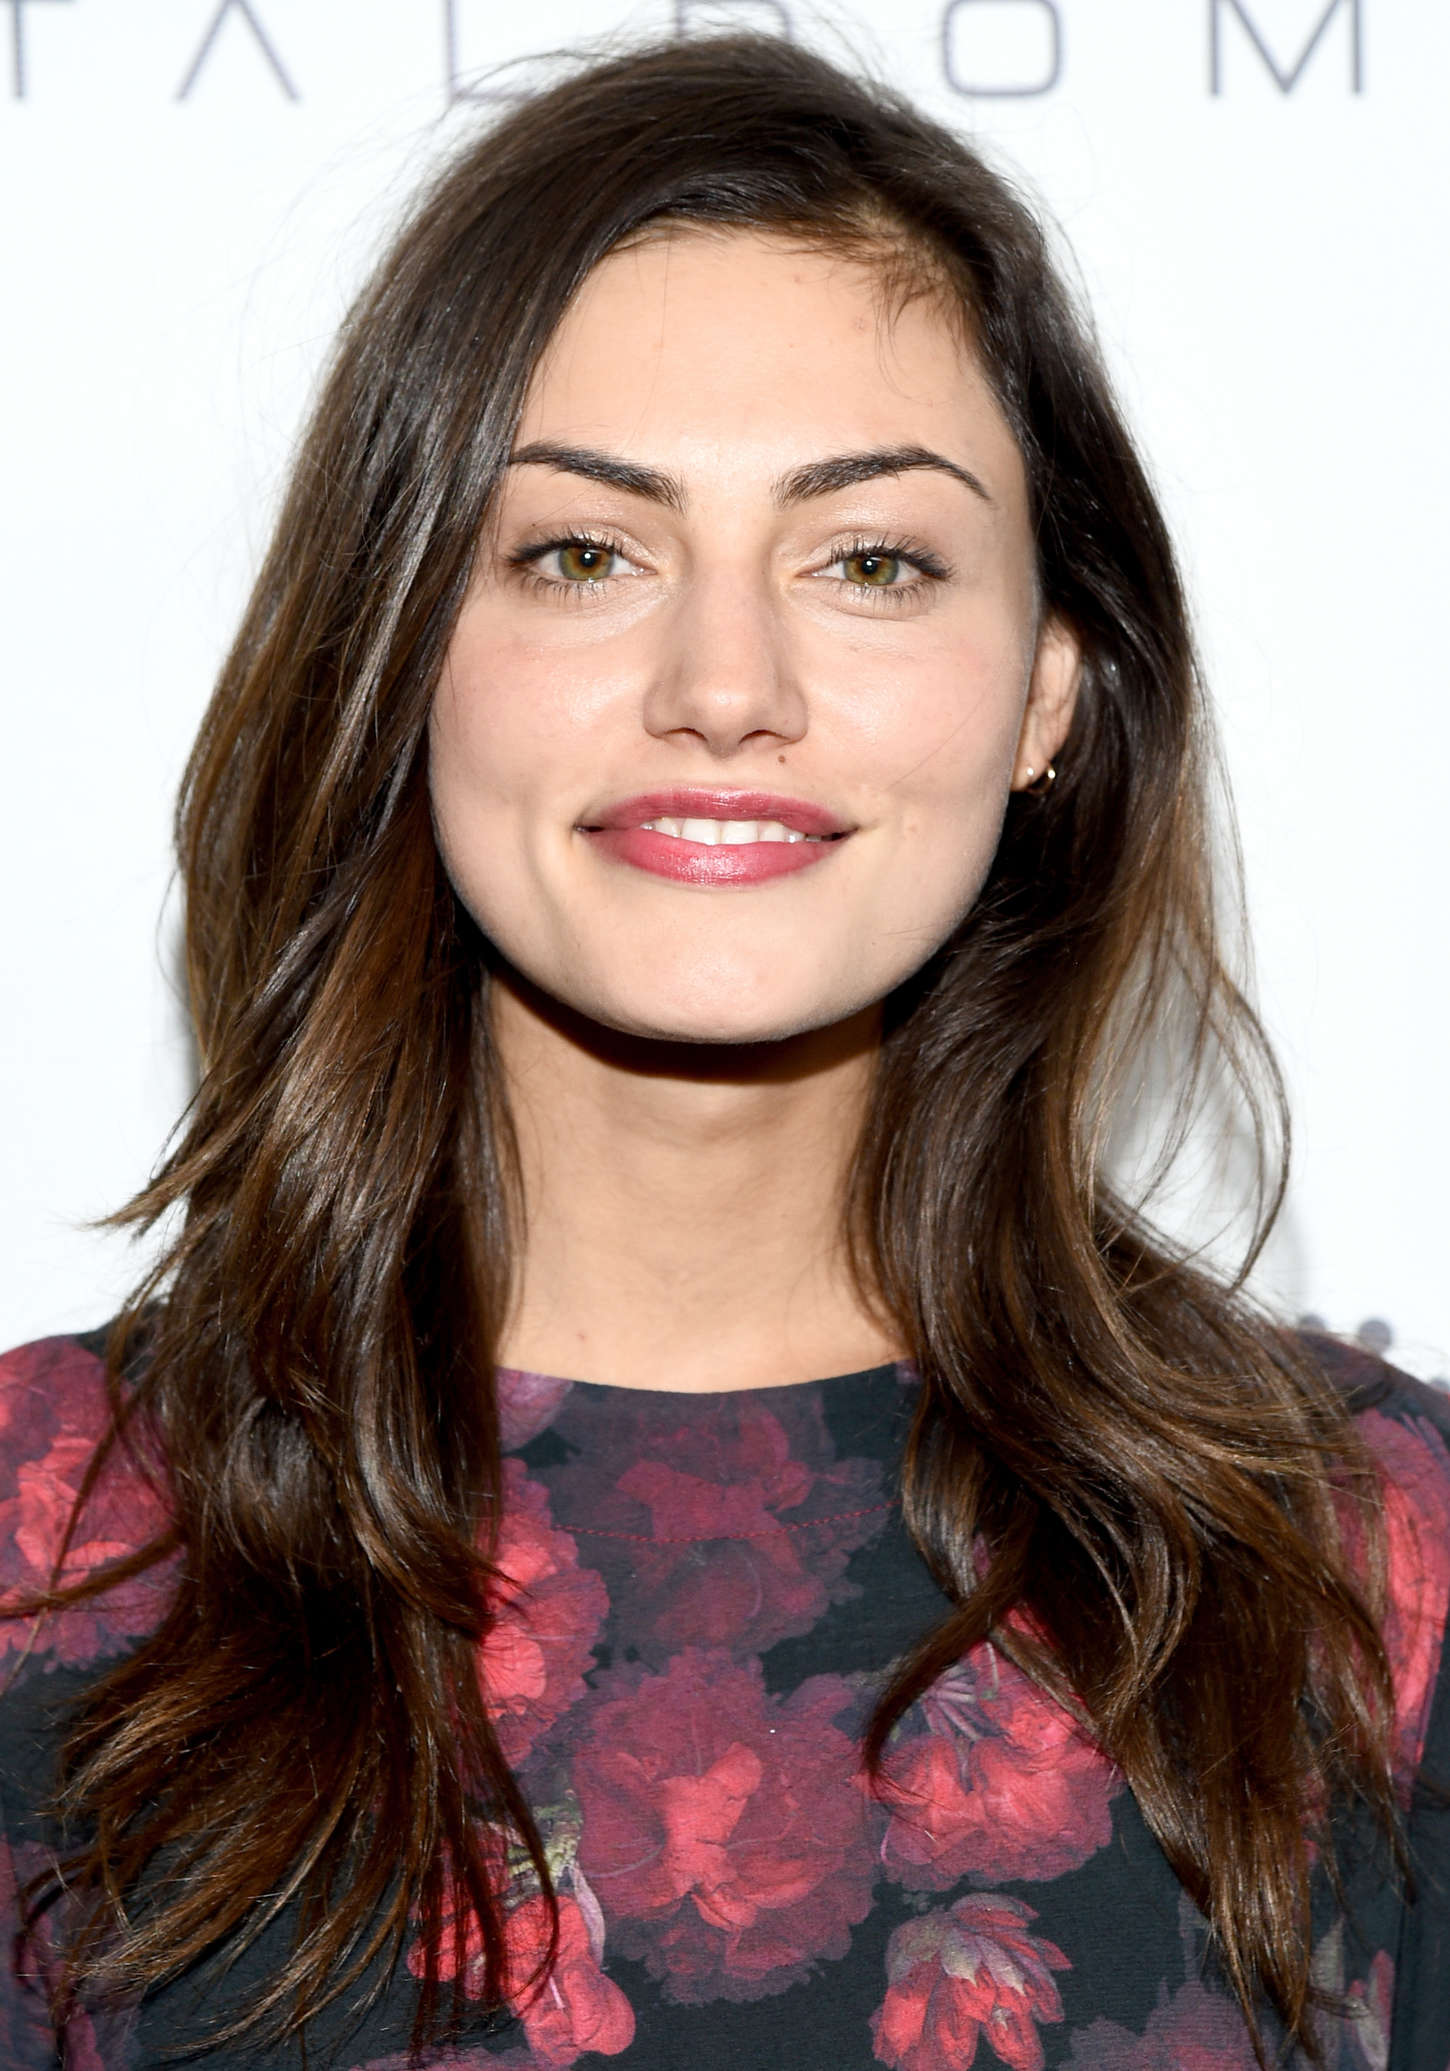 Phoebe Tonkin March Of Dimes Celebration Of Babies in Beverly Hills